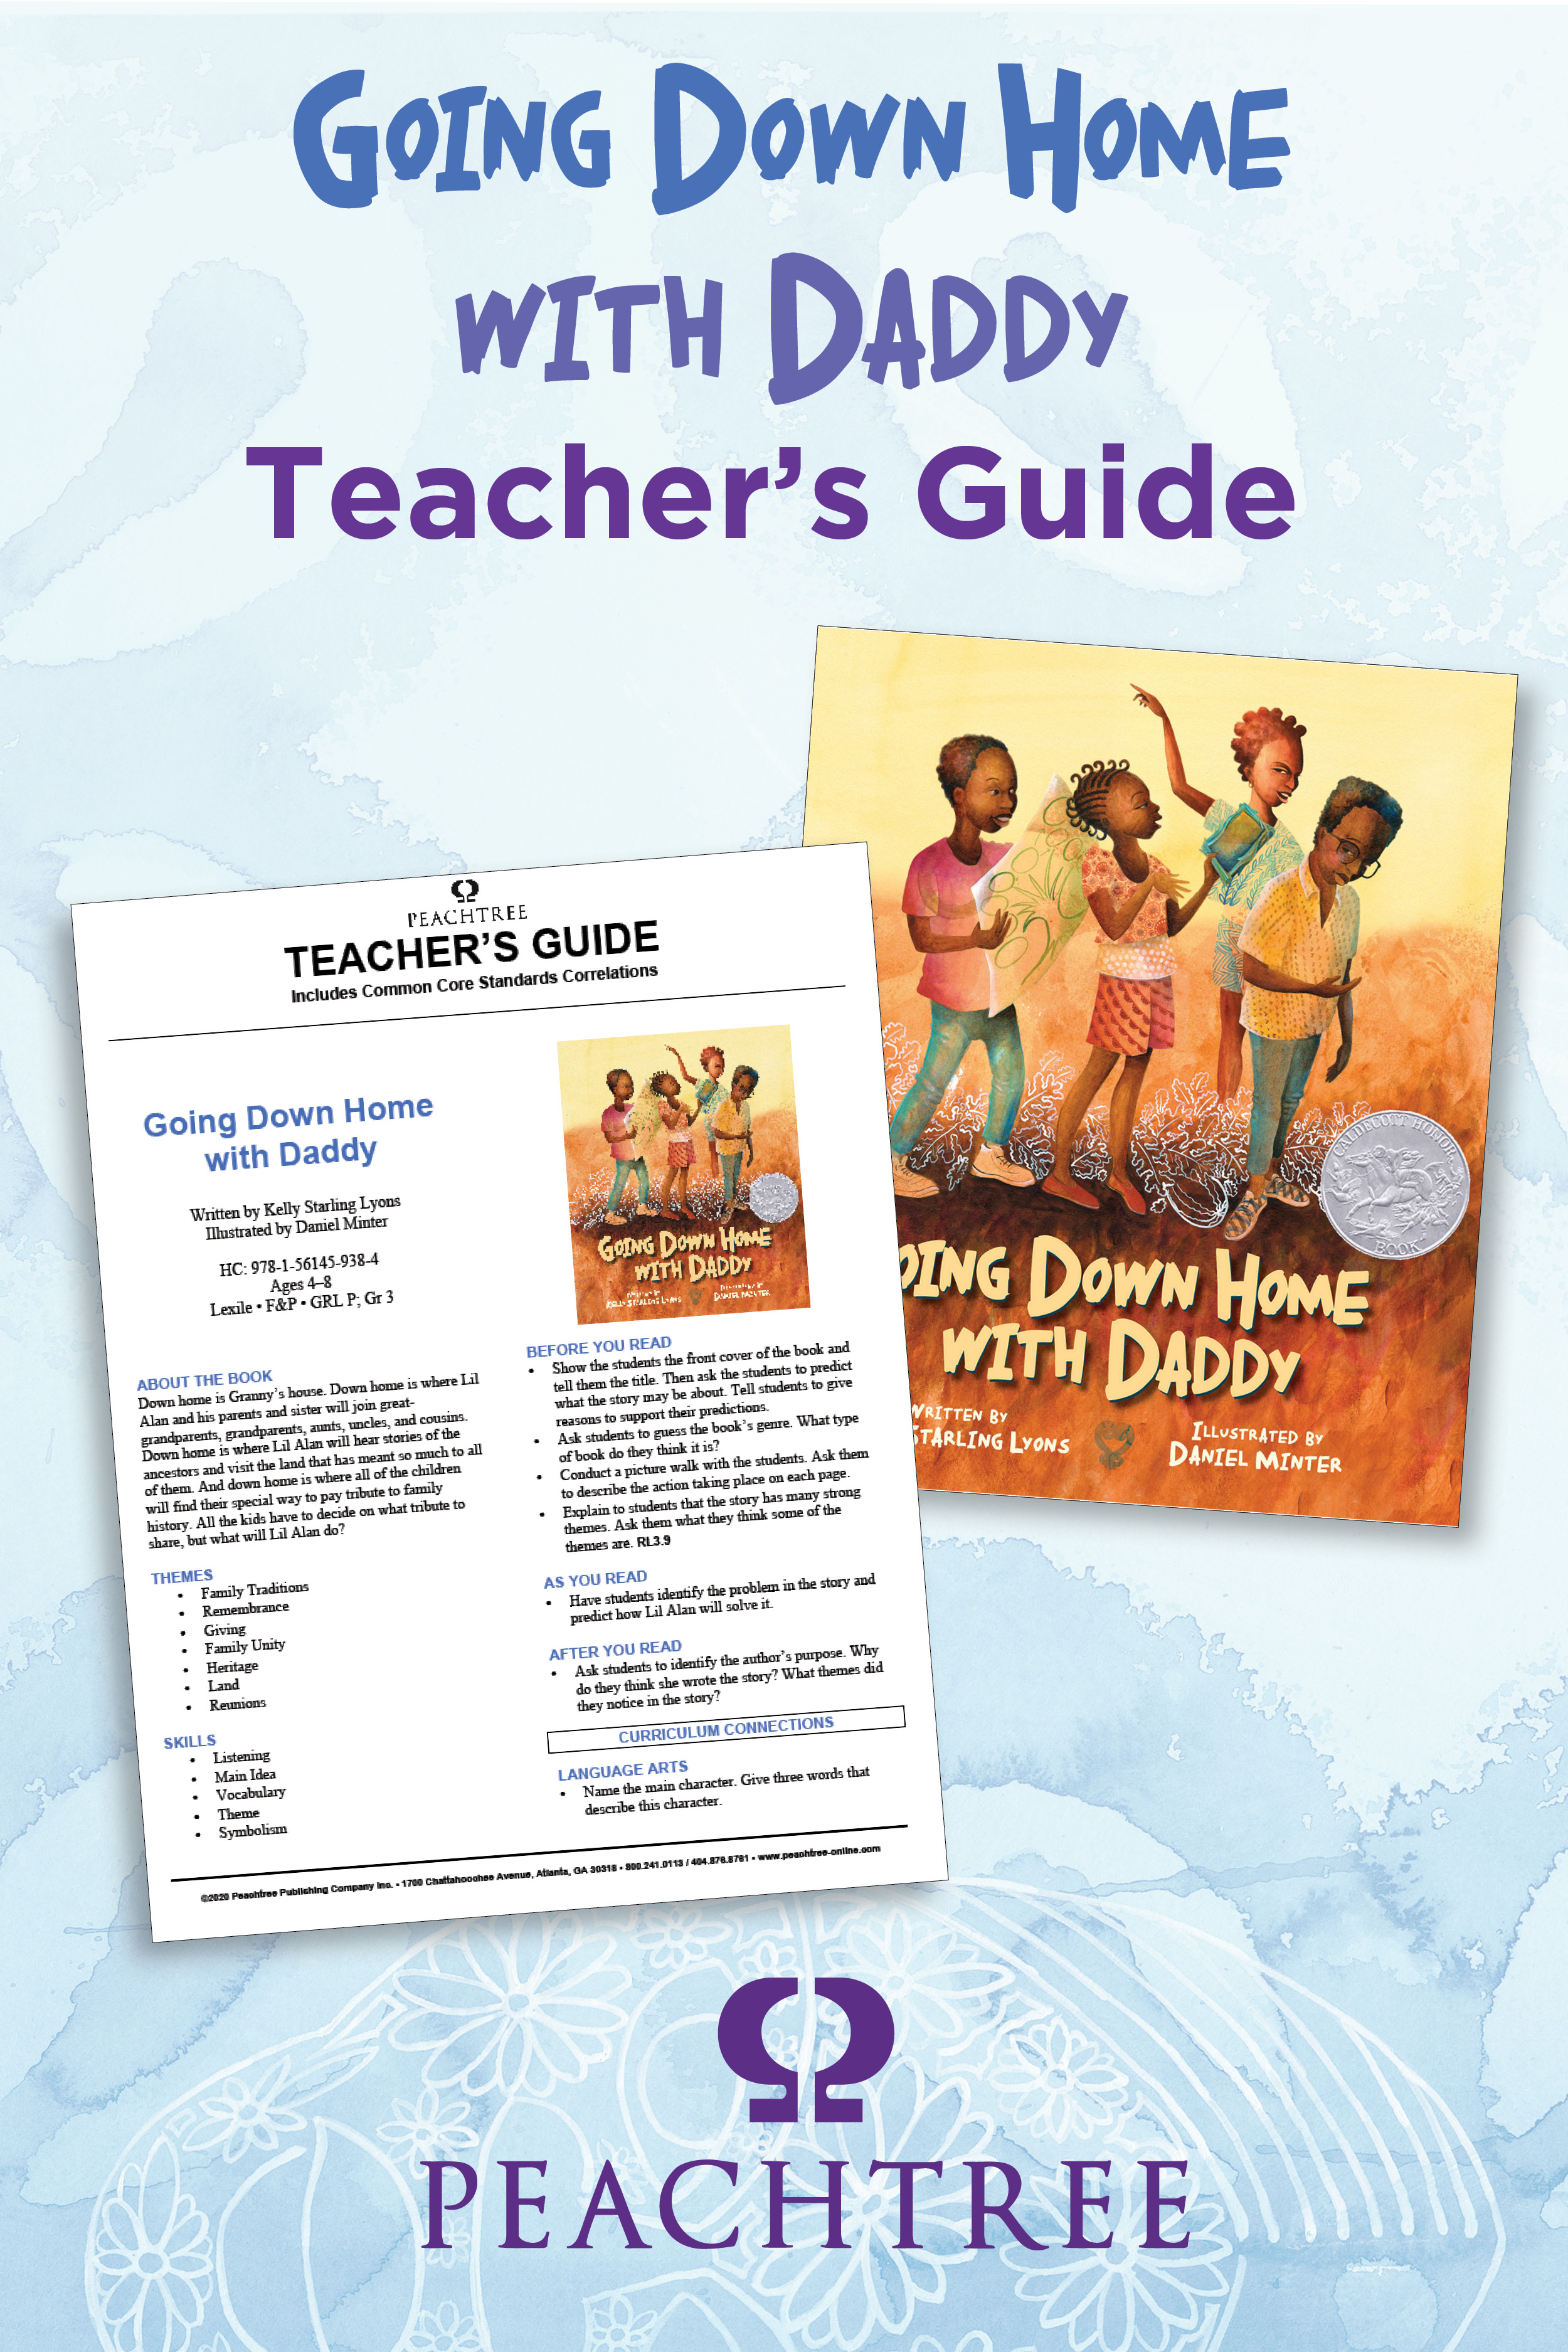 Going Down Home with Daddy Teacher's Guide